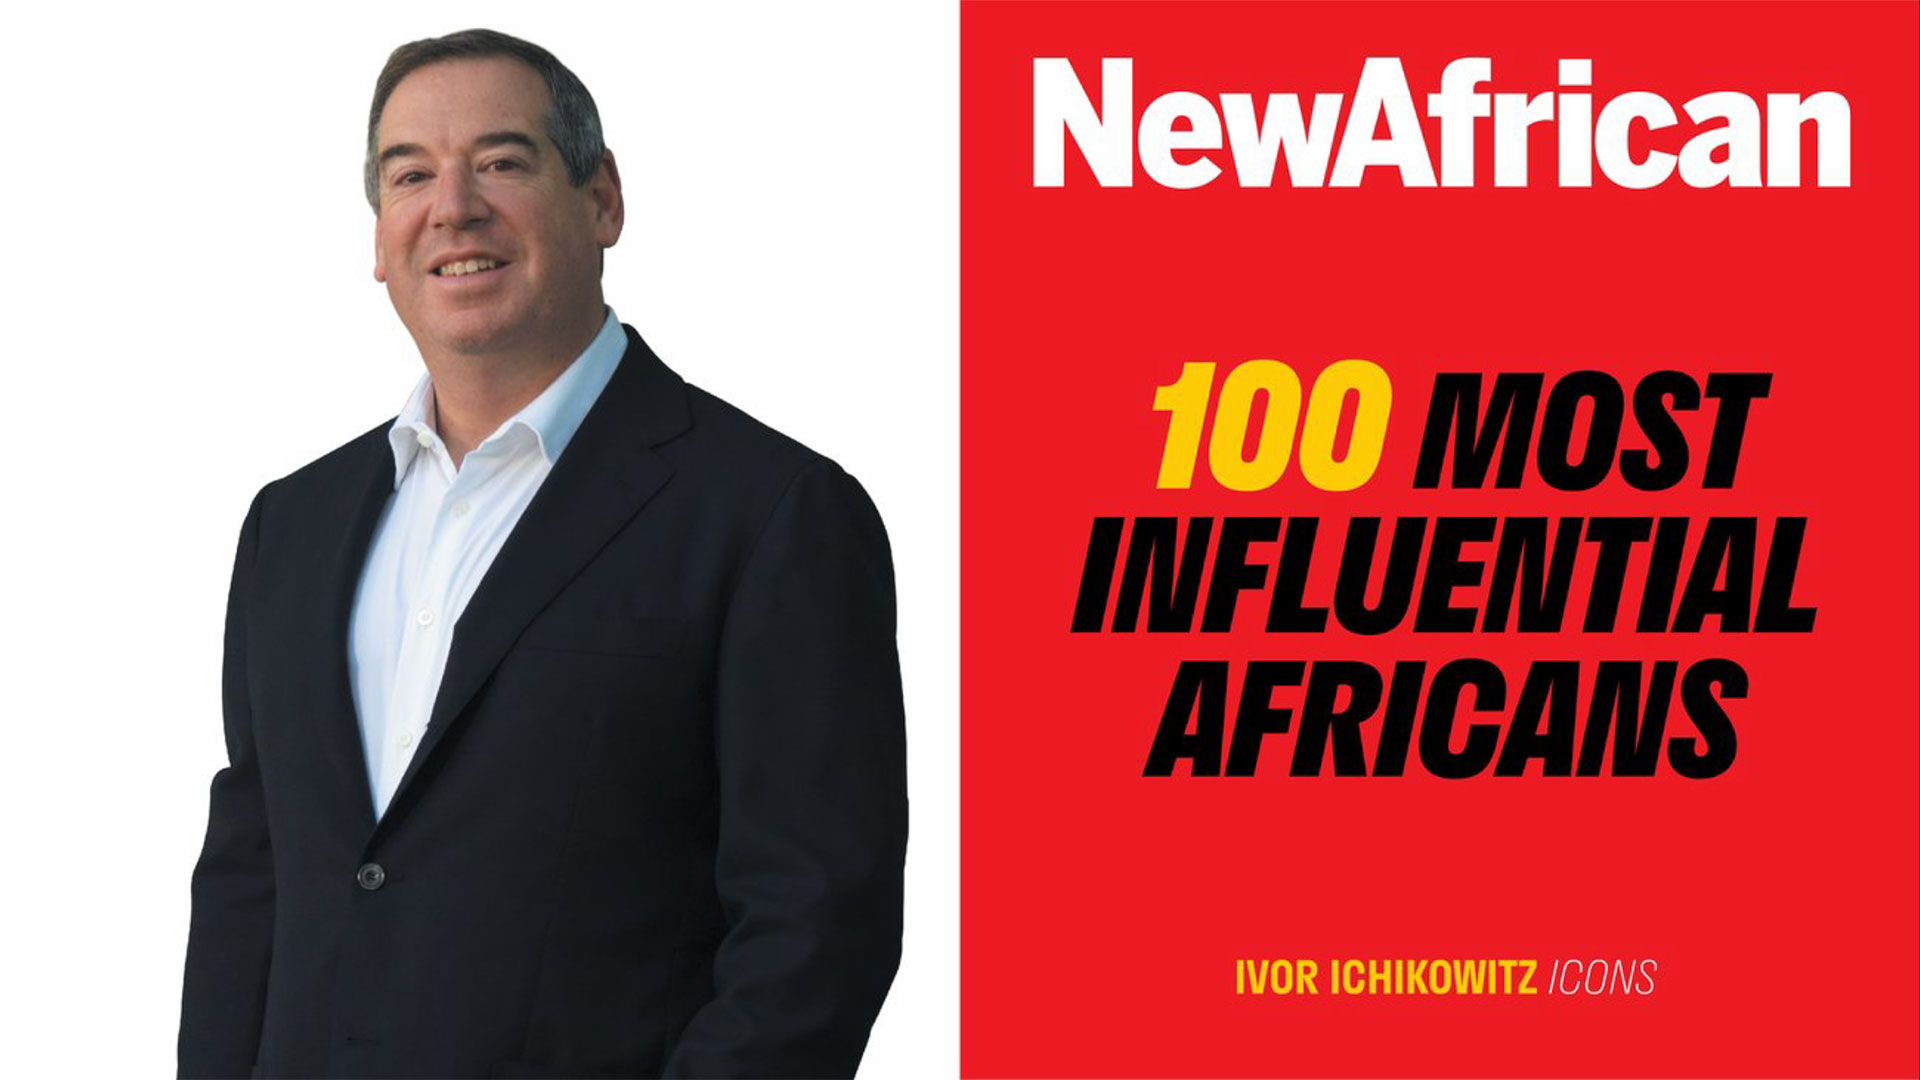 Industrialist And Philanthropist Ivor Ichikowitz Named One Of Africa's Most Influential People Of 2020